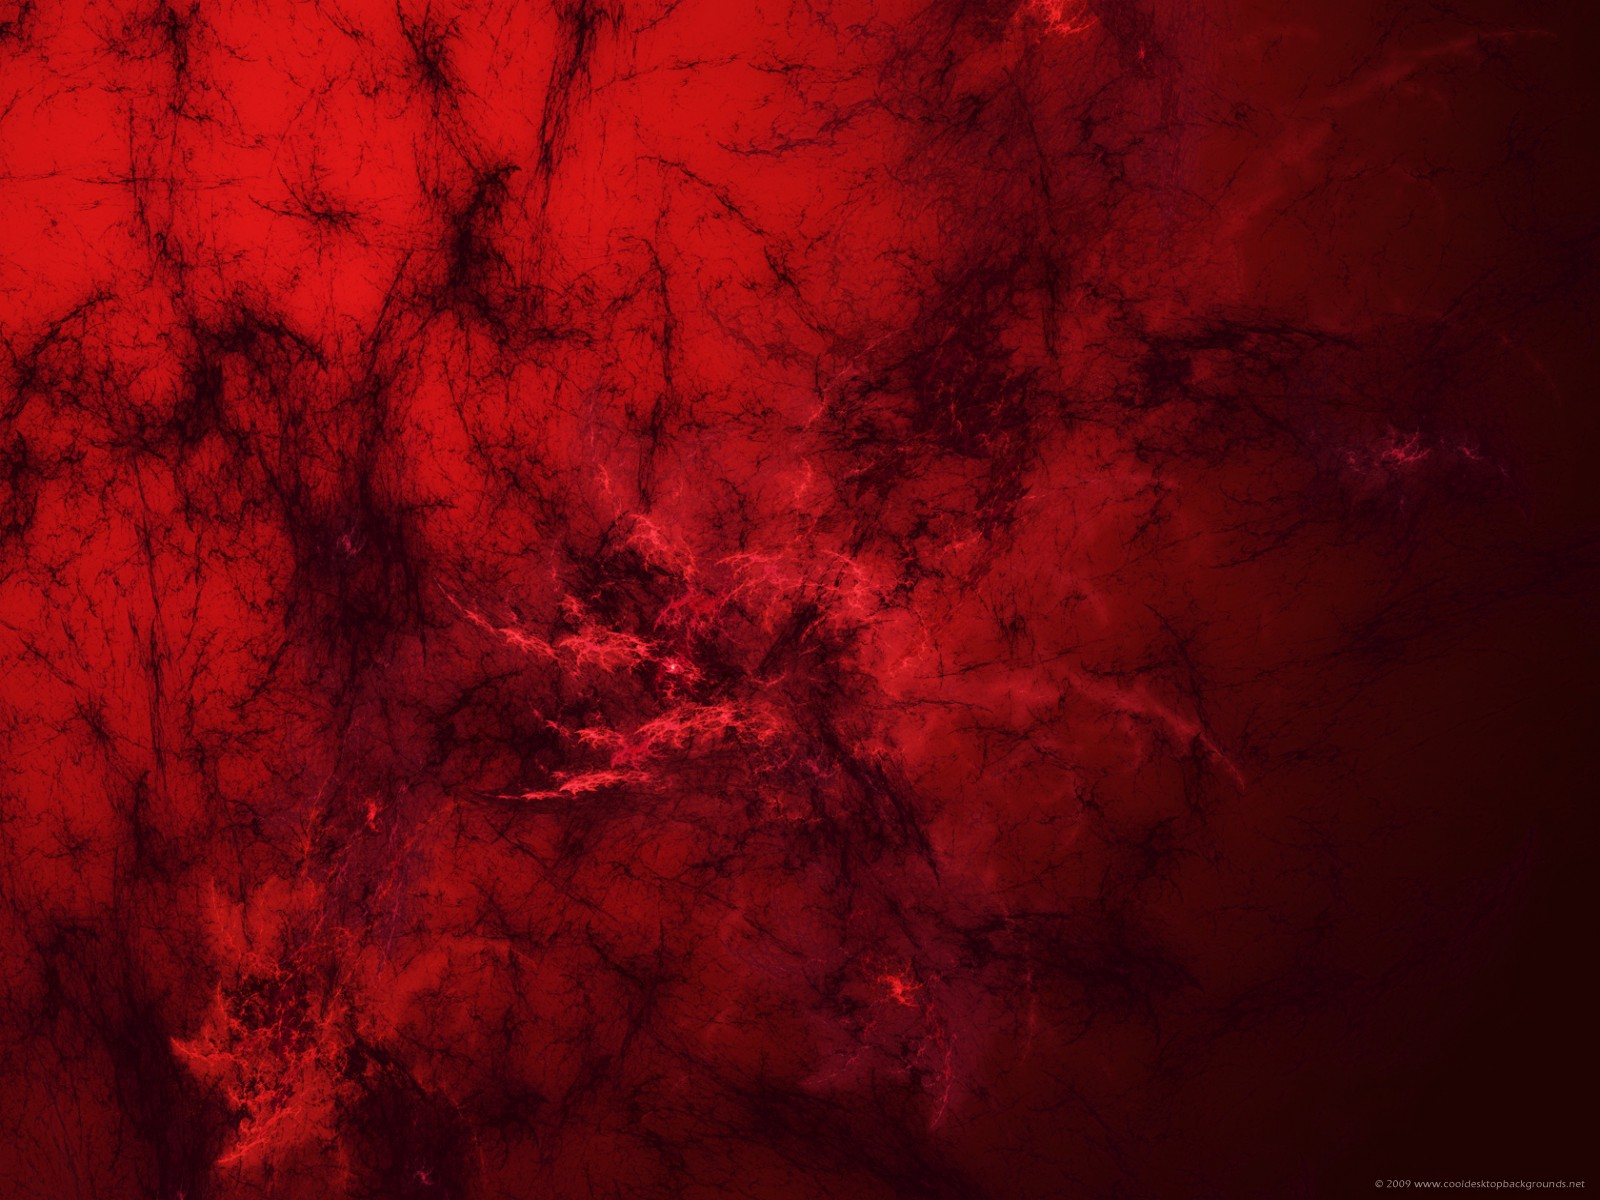 Red And Black Wallpaper 109 206478 Images HD Wallpapers Wallfoycom 1600x1200